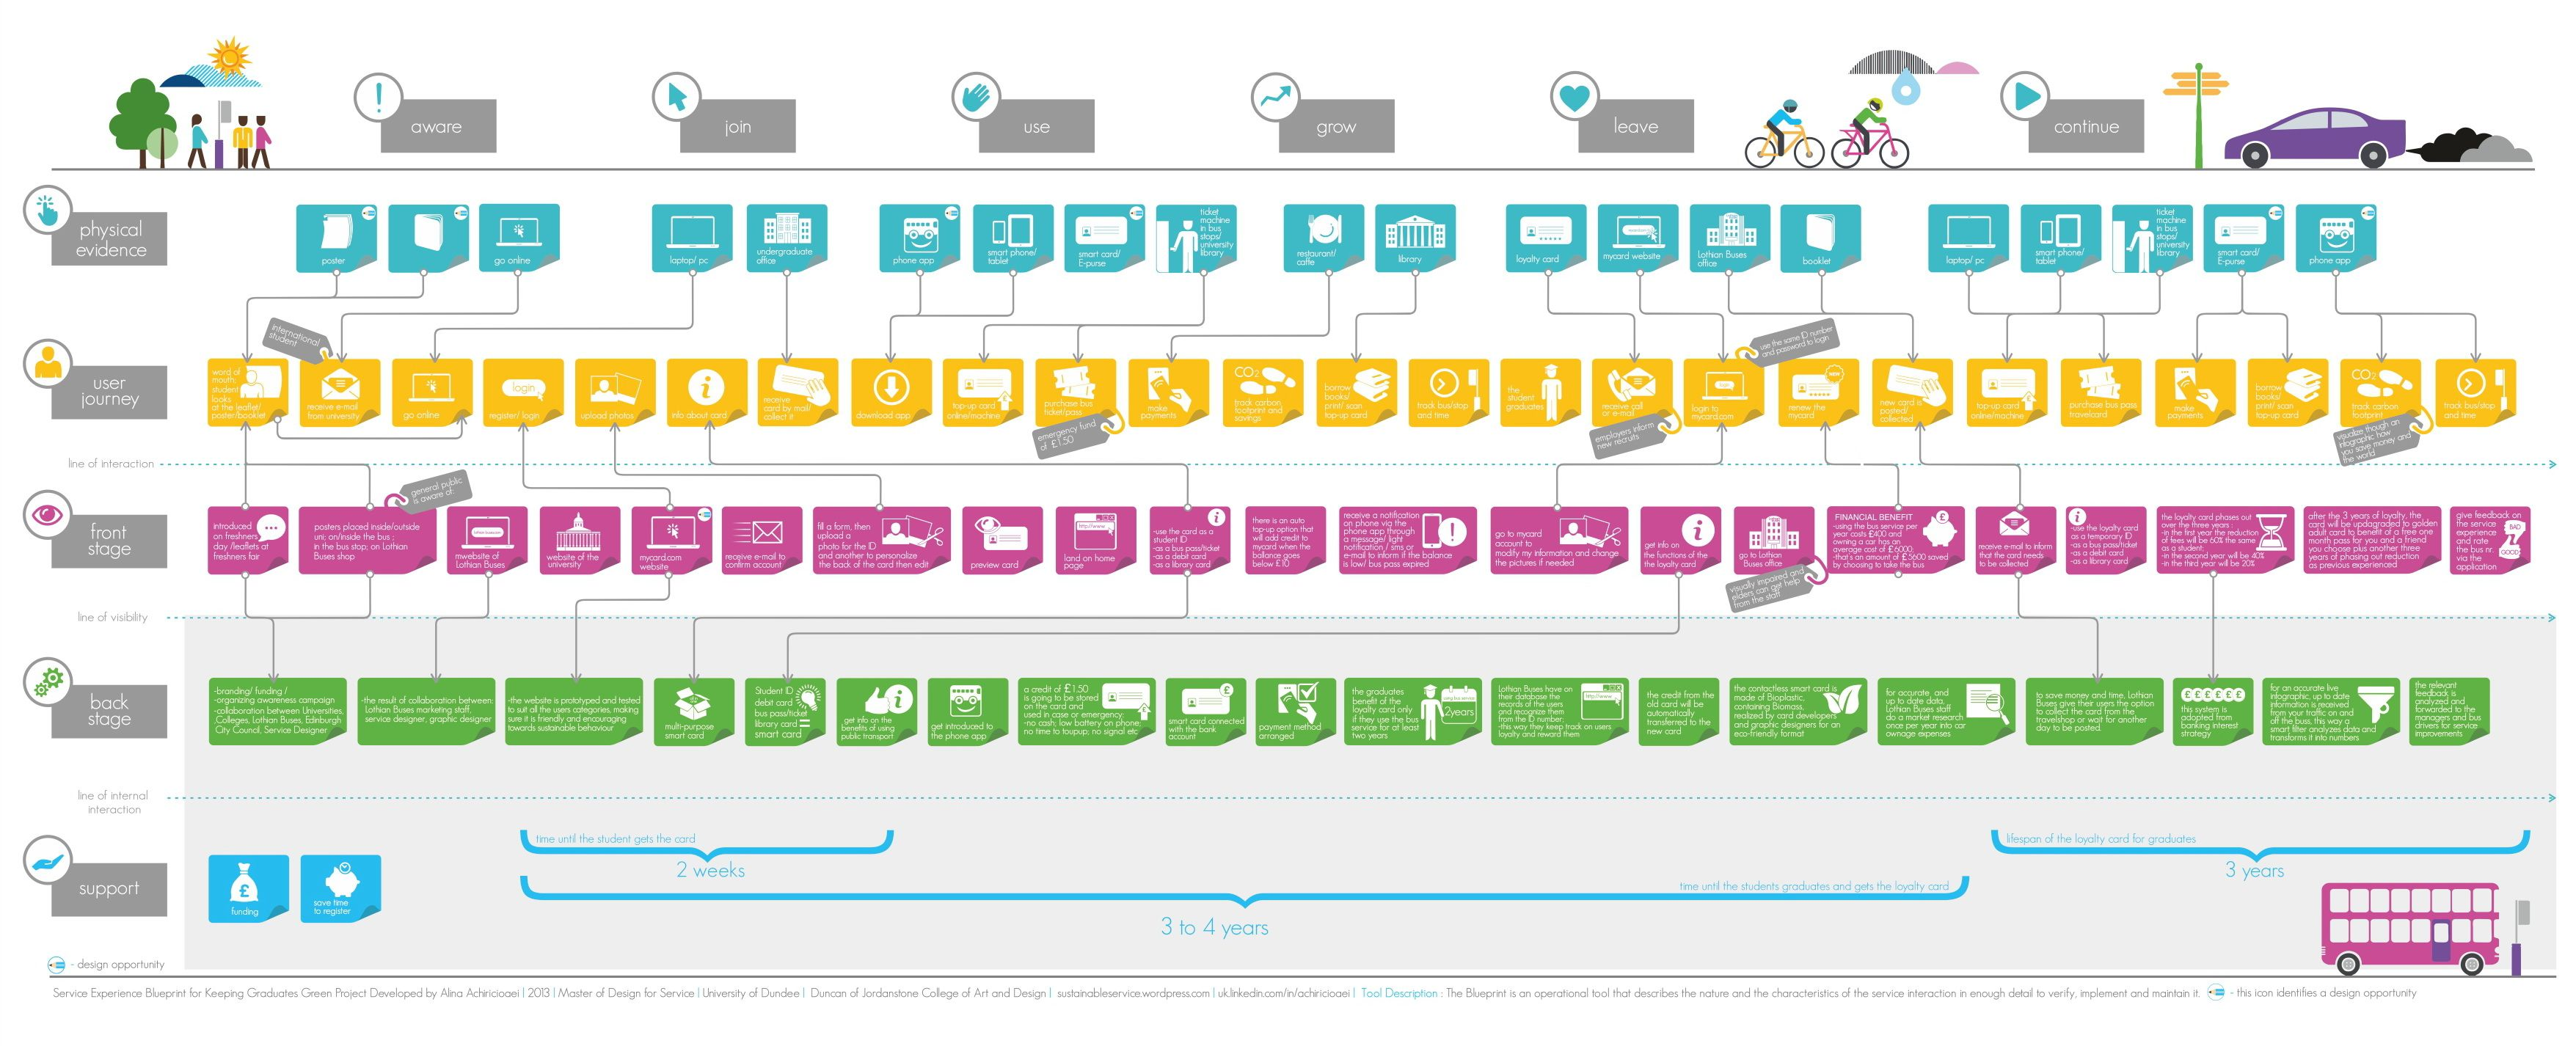 Image result for service design blueprint examples service image result for service design blueprint examples malvernweather Images